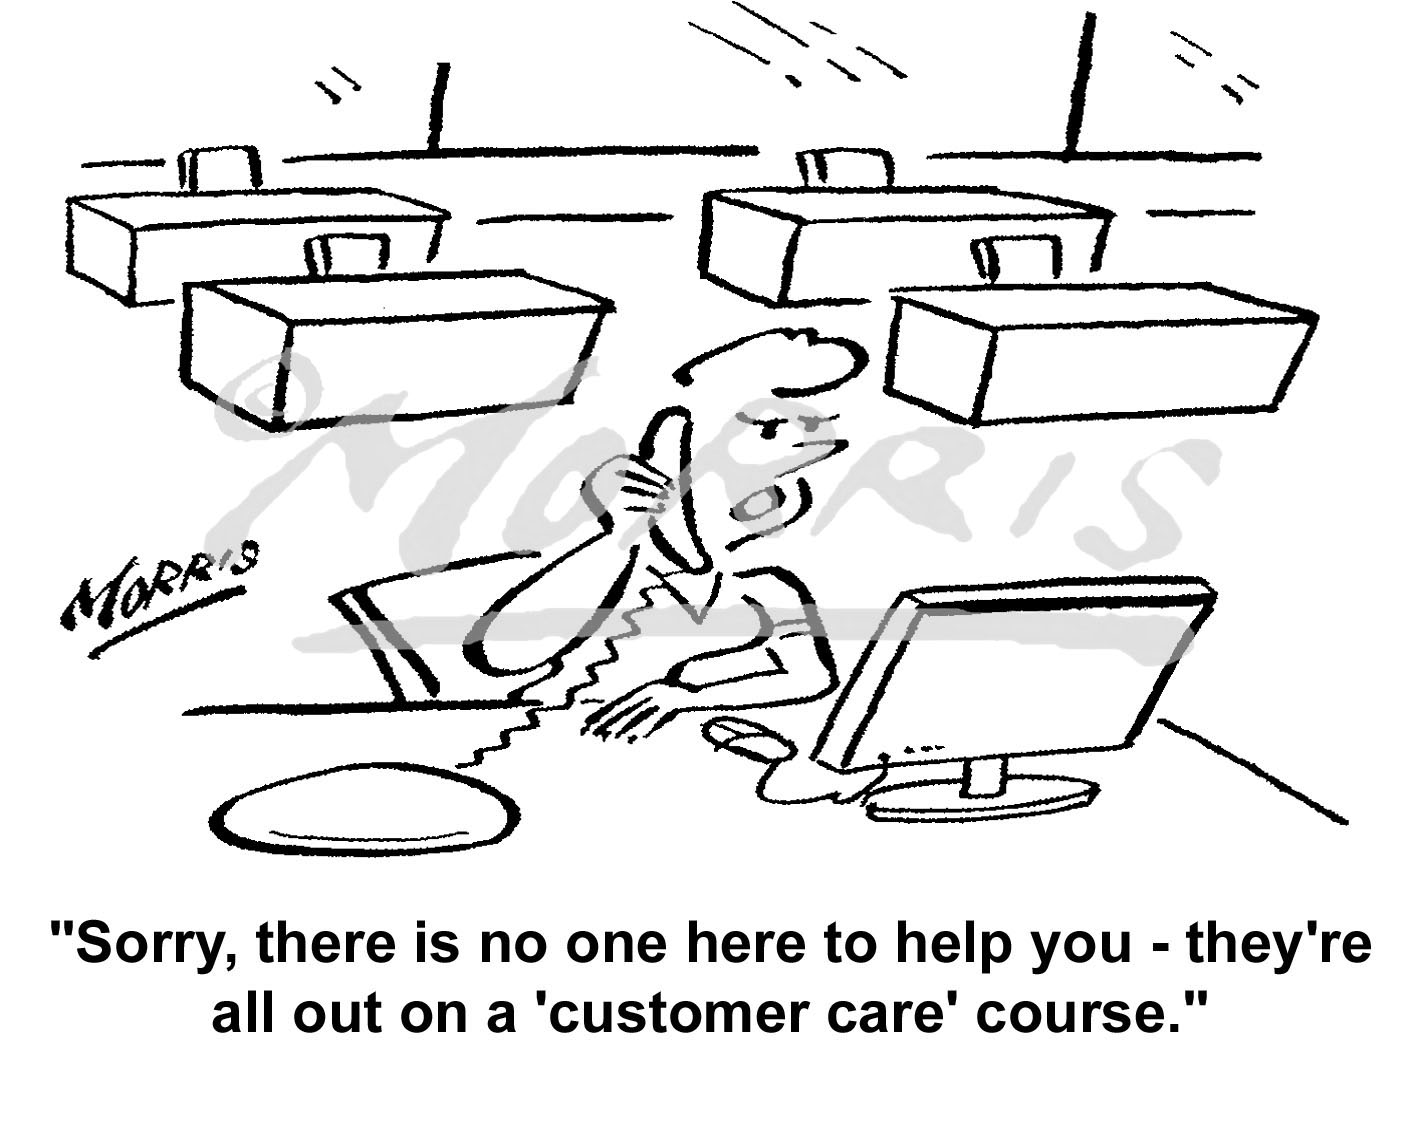 Business course and Customer service cartoon – 5649bw